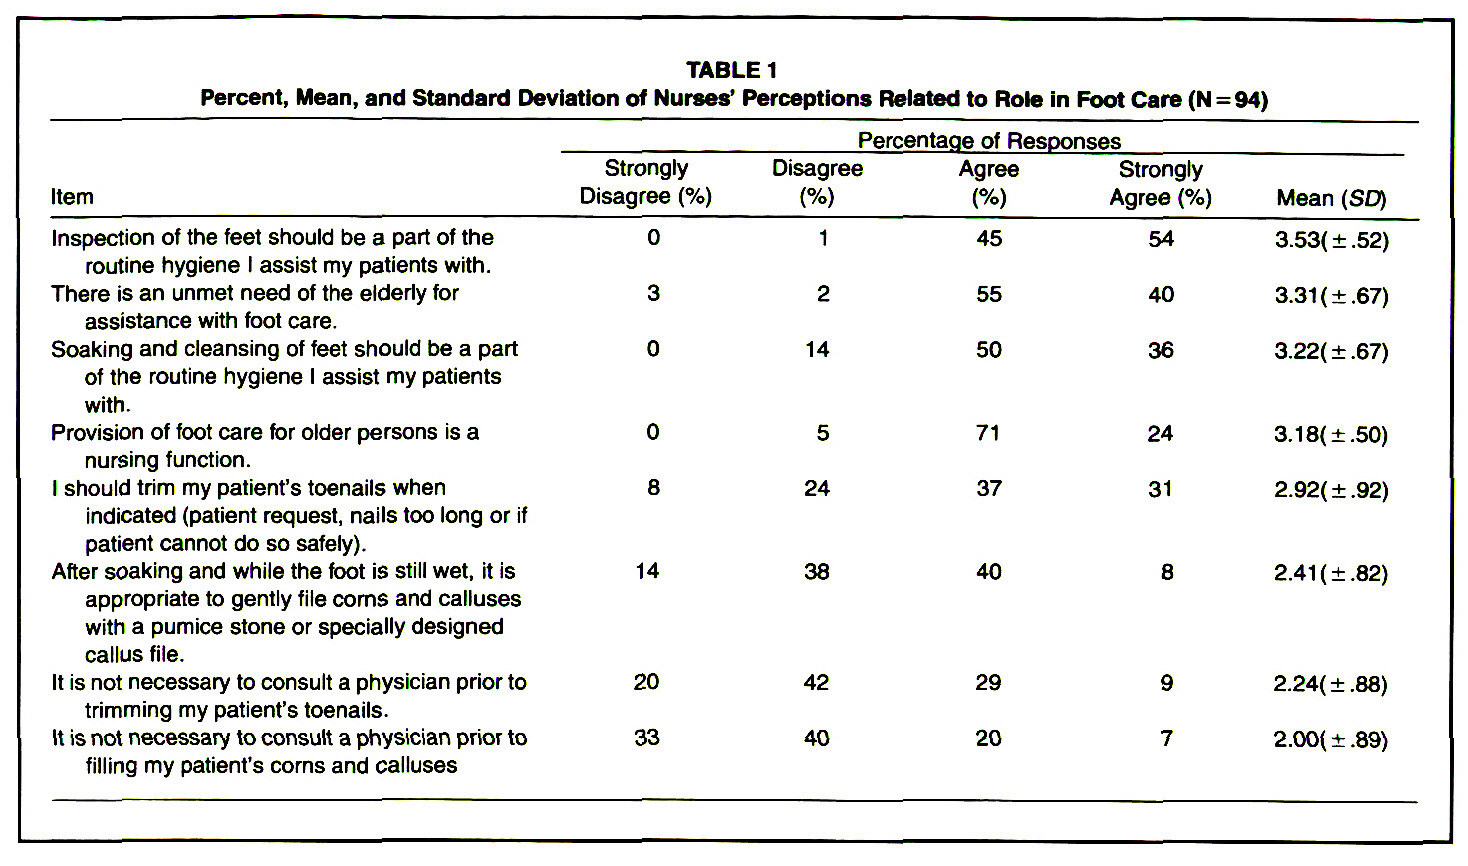 TABLE 1Percent, Mean, and Standard Deviation of Nurses' Perceptions Related to Role in Foot Care (N =94)